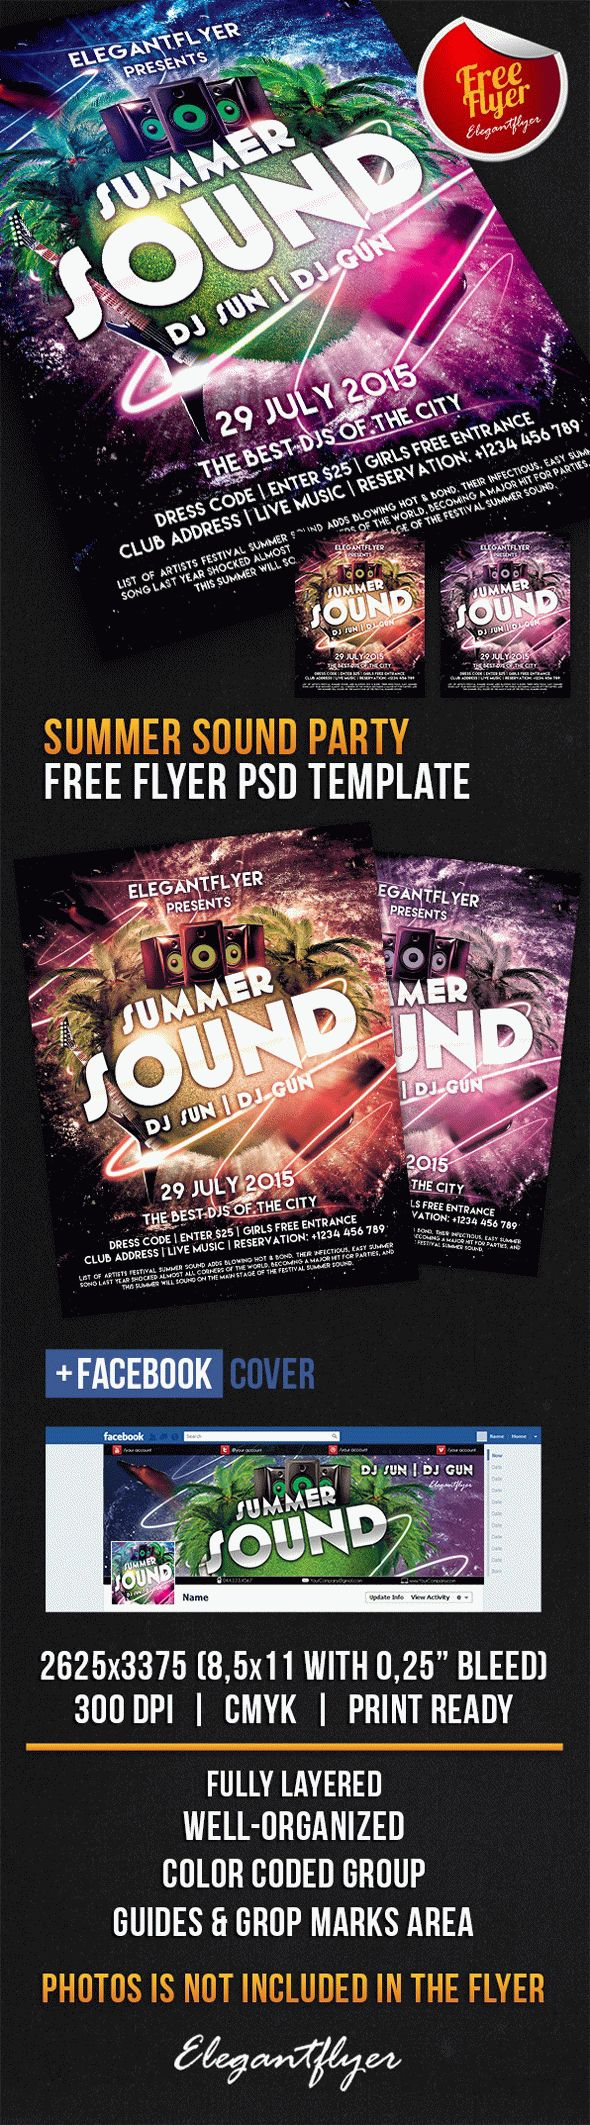 Summer Sound Party – Free Flyer PSD Template + Facebook Cover